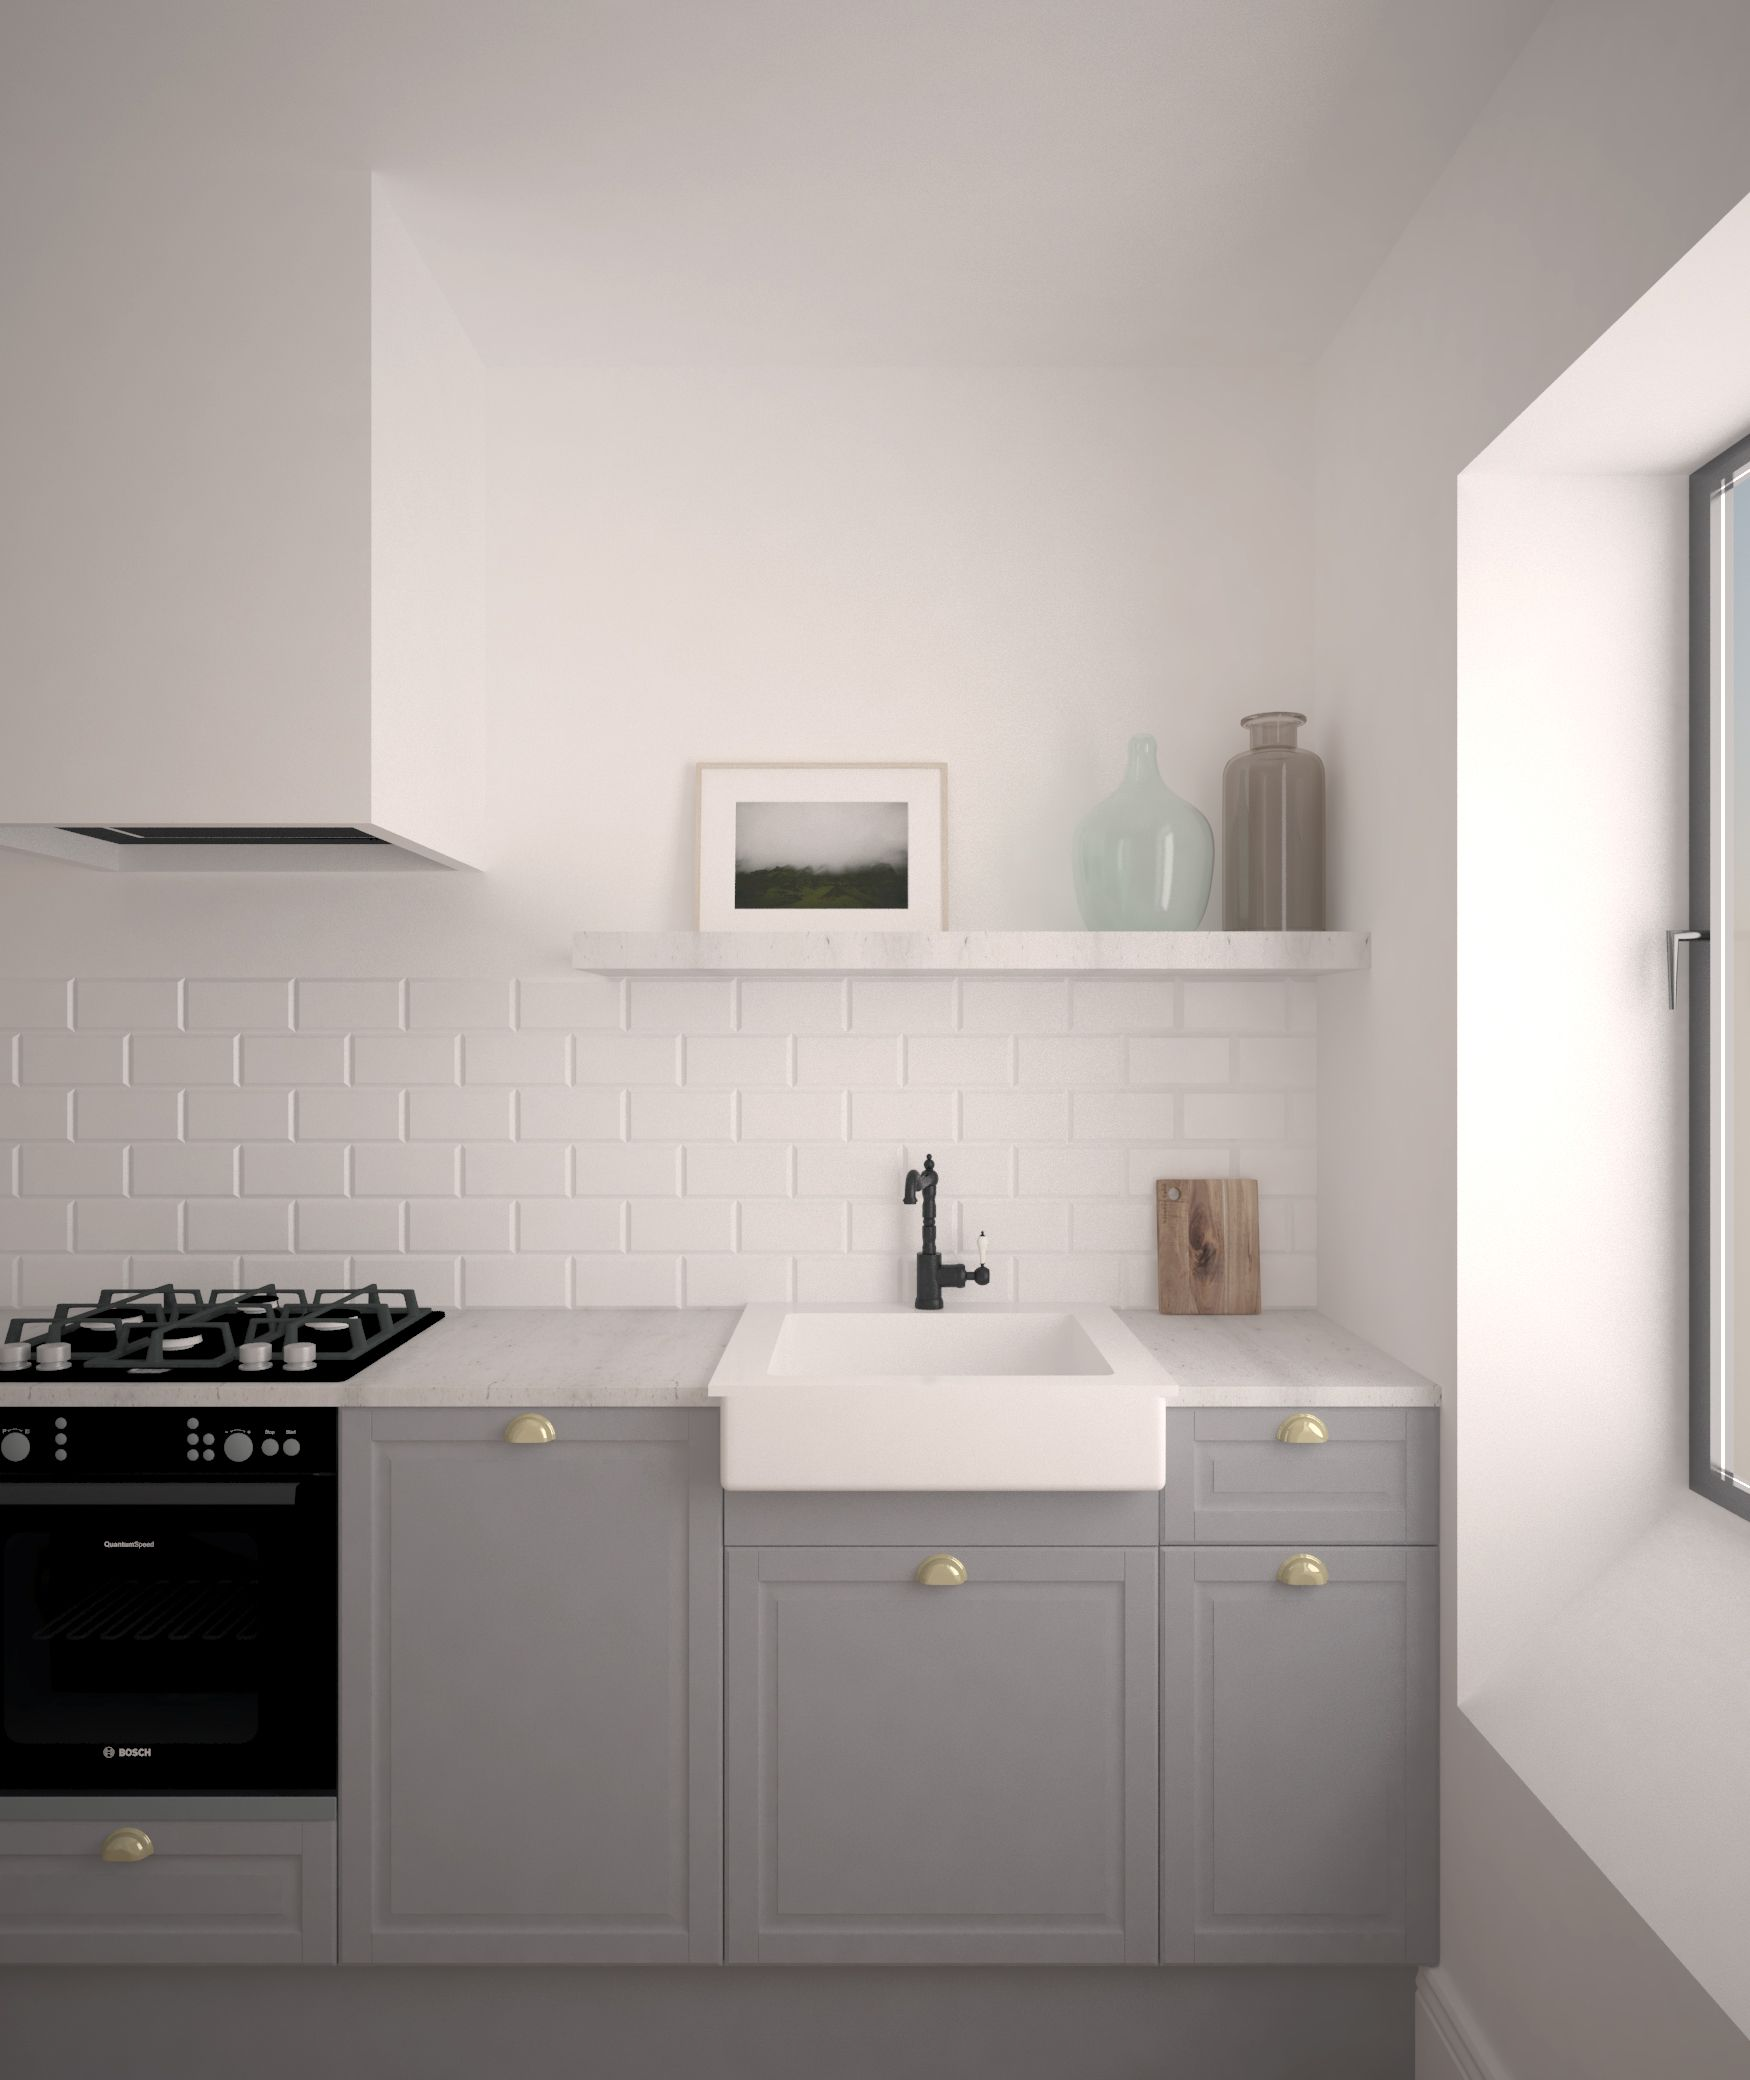 Awkward Kitchen Layout Solutions: Apartamento Sagardotegi